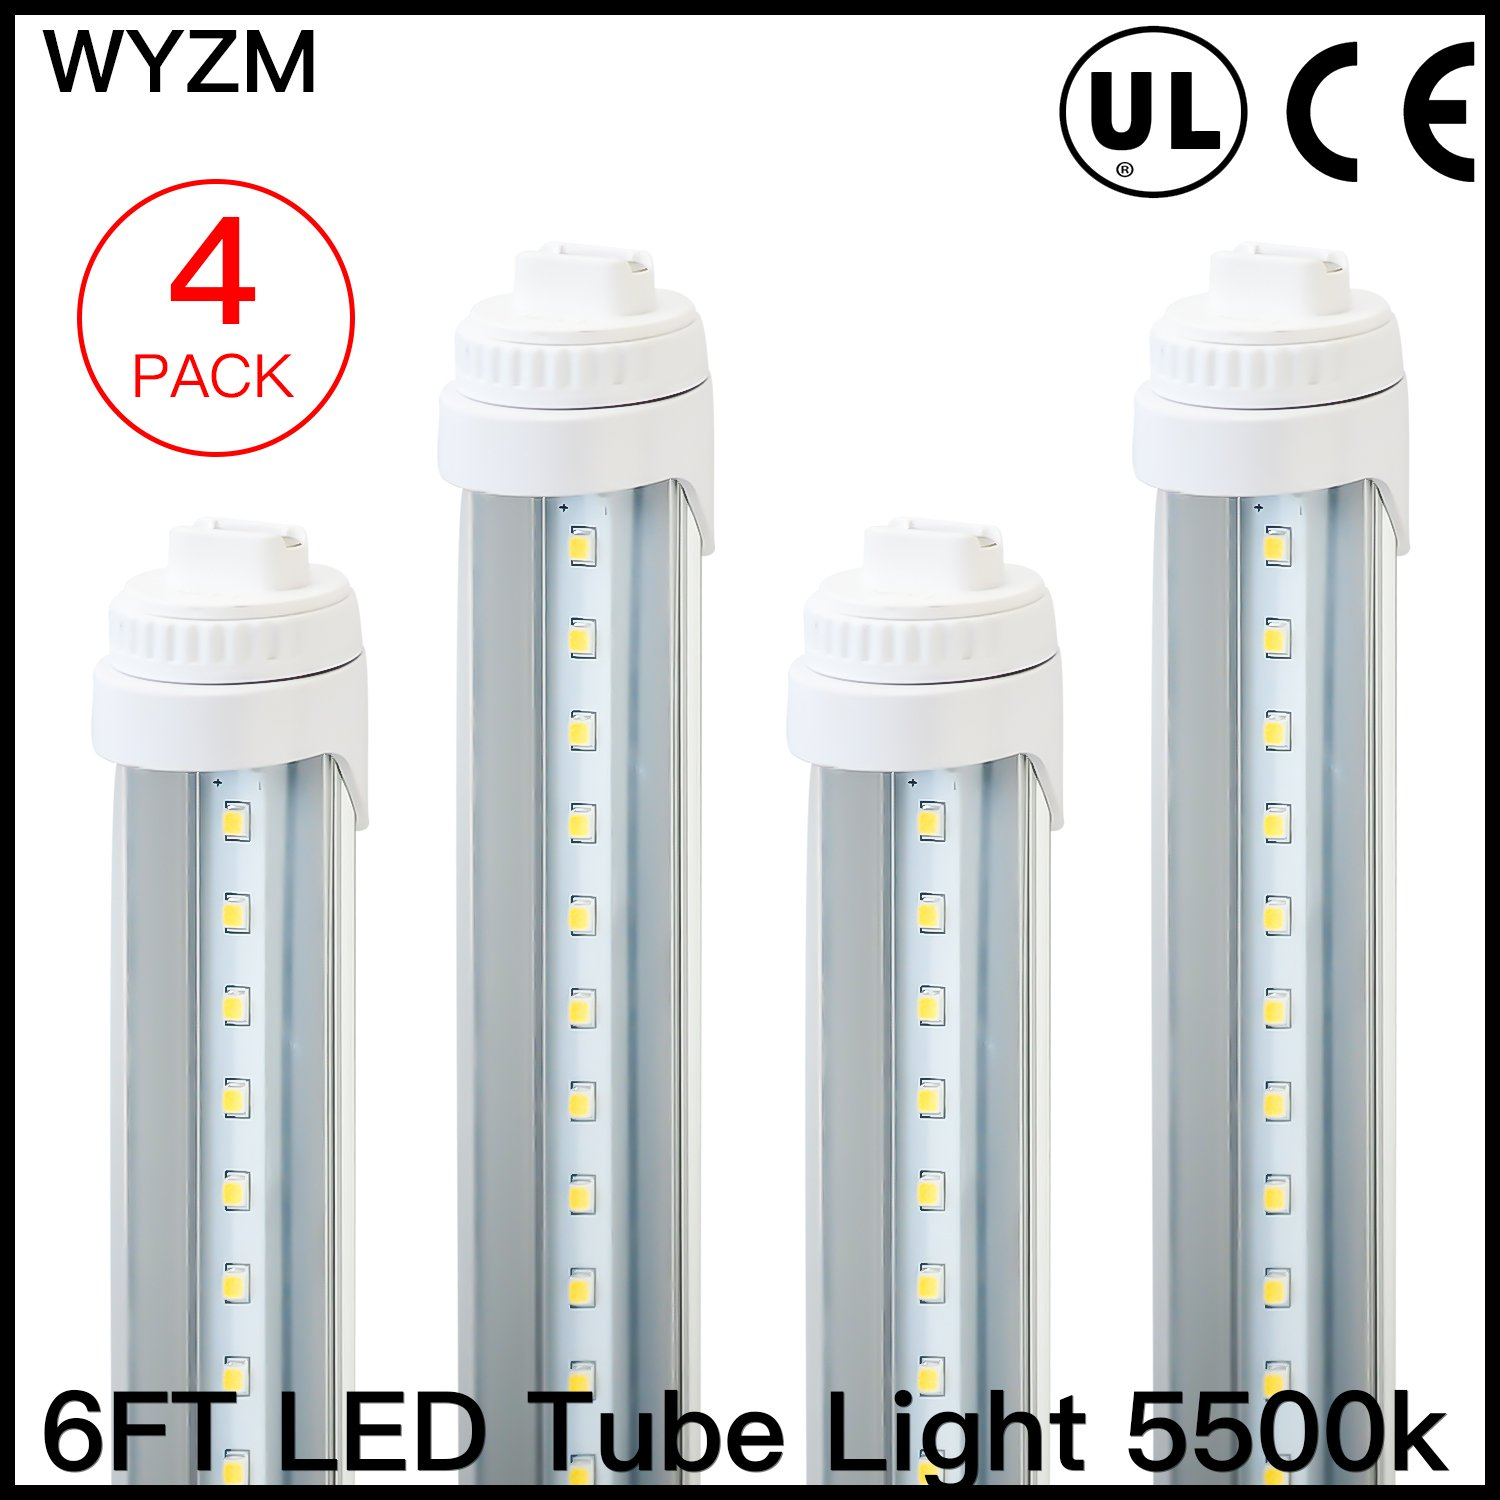 WYZM R17D 6 Feet 30w LED Tube Light Fluorescent Replacement for F72T12/CW/HO (4-pack white)